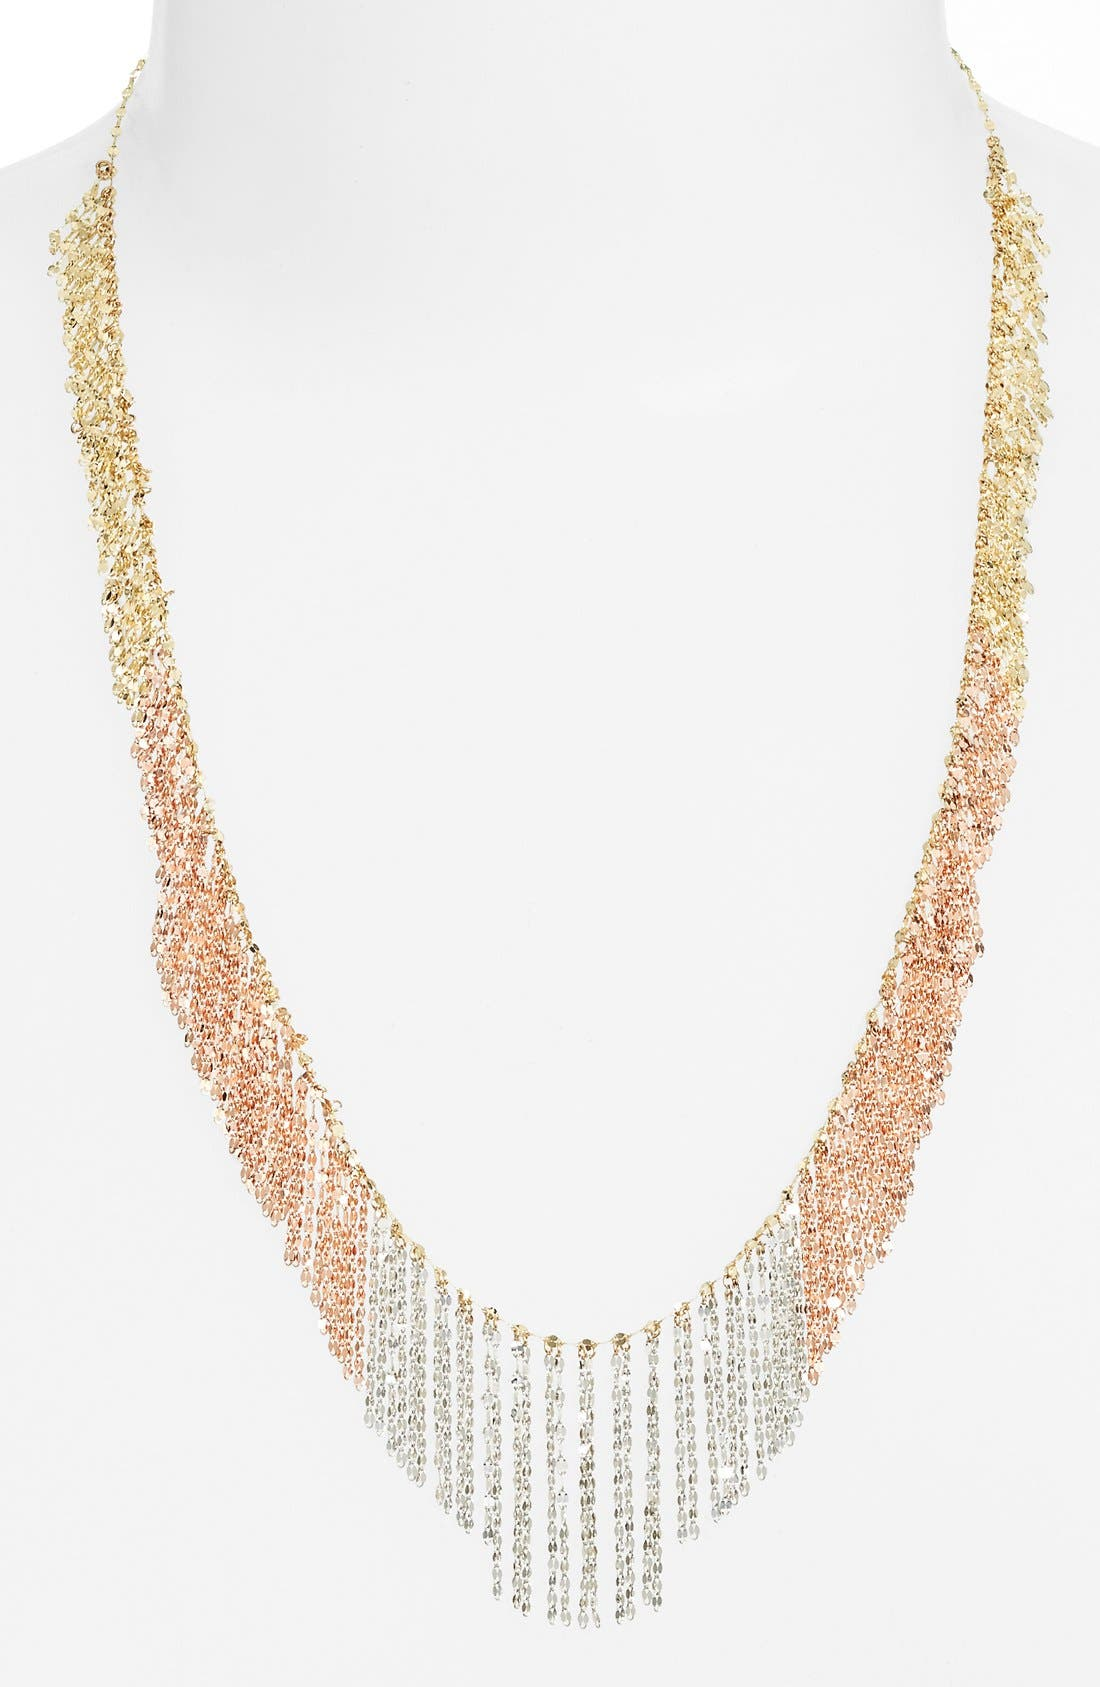 'Nude' Tri-Color Fringe Necklace,                         Main,                         color, Yellow/ Rose/ White Gold